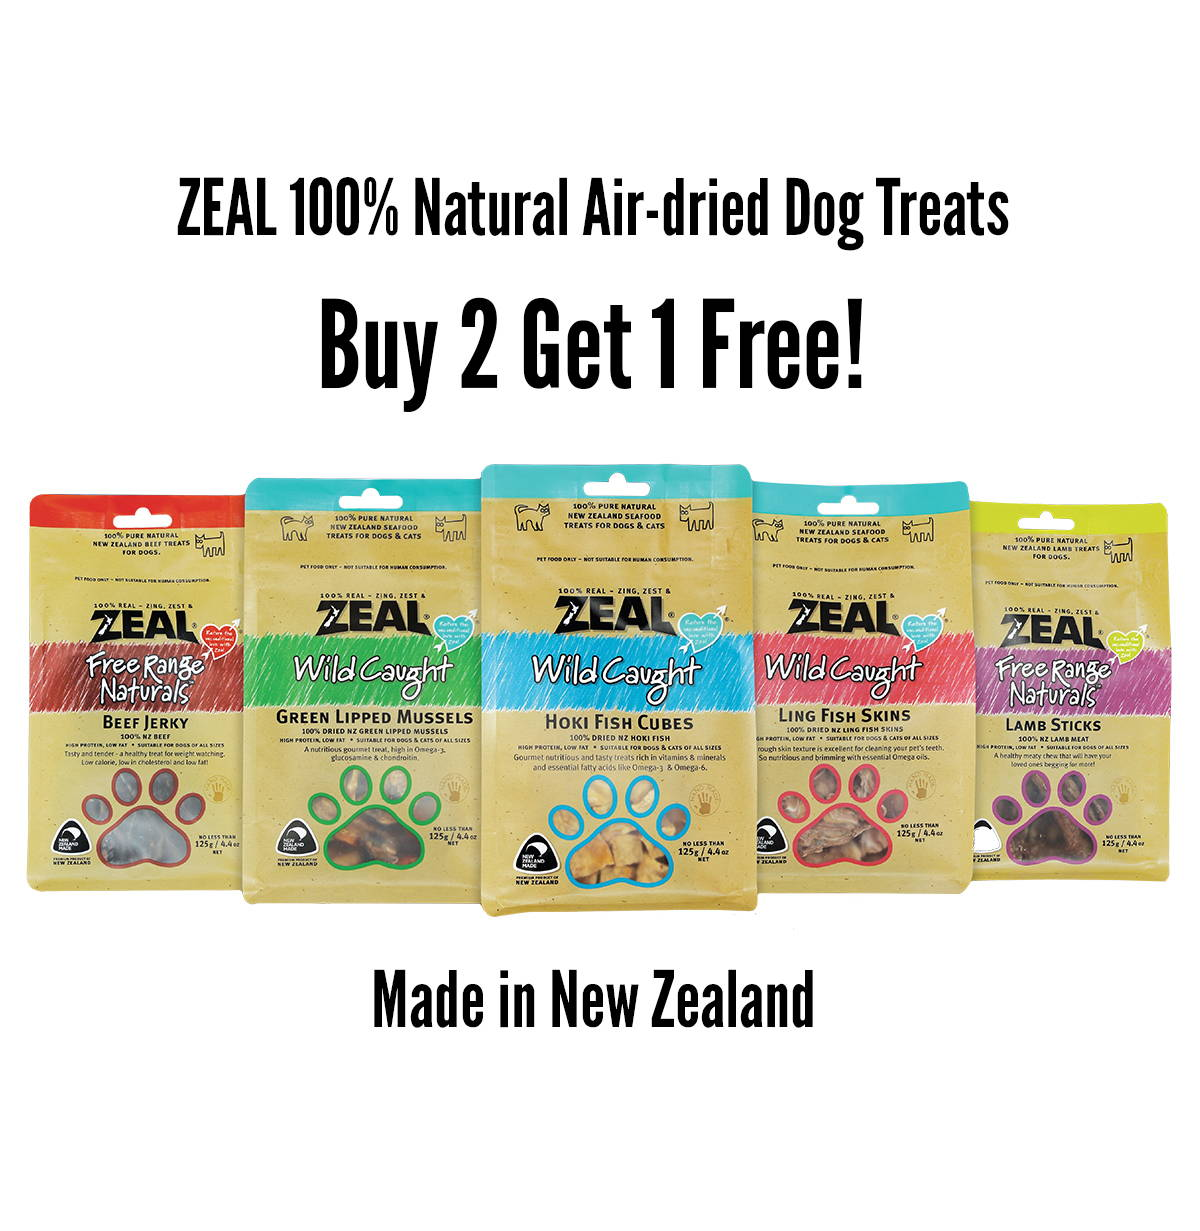 pawpy kisses black friday zeal promotion